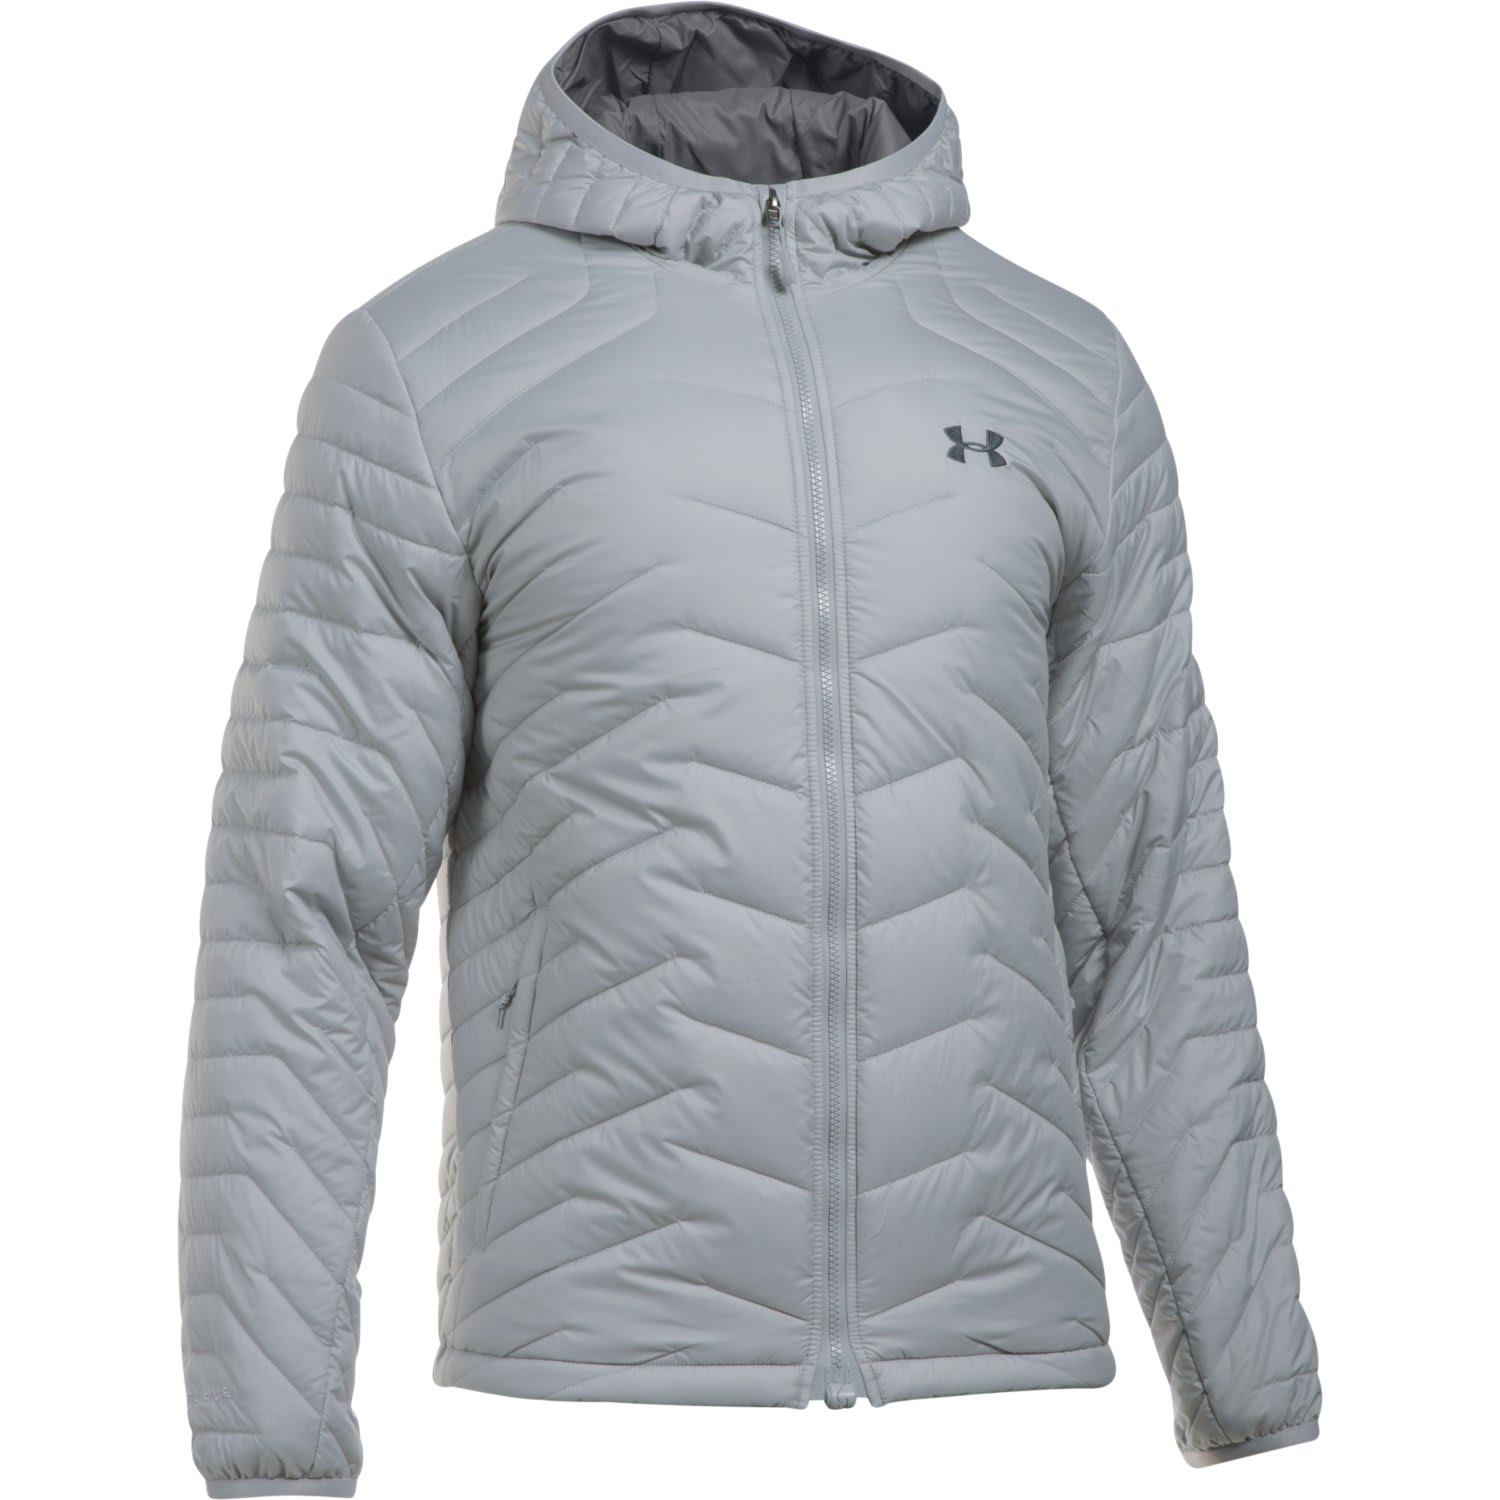 Under Armour ColdGear Reactor Hooded Jacket ua3crh04oggsg17zz-under-armour-casual-jackets